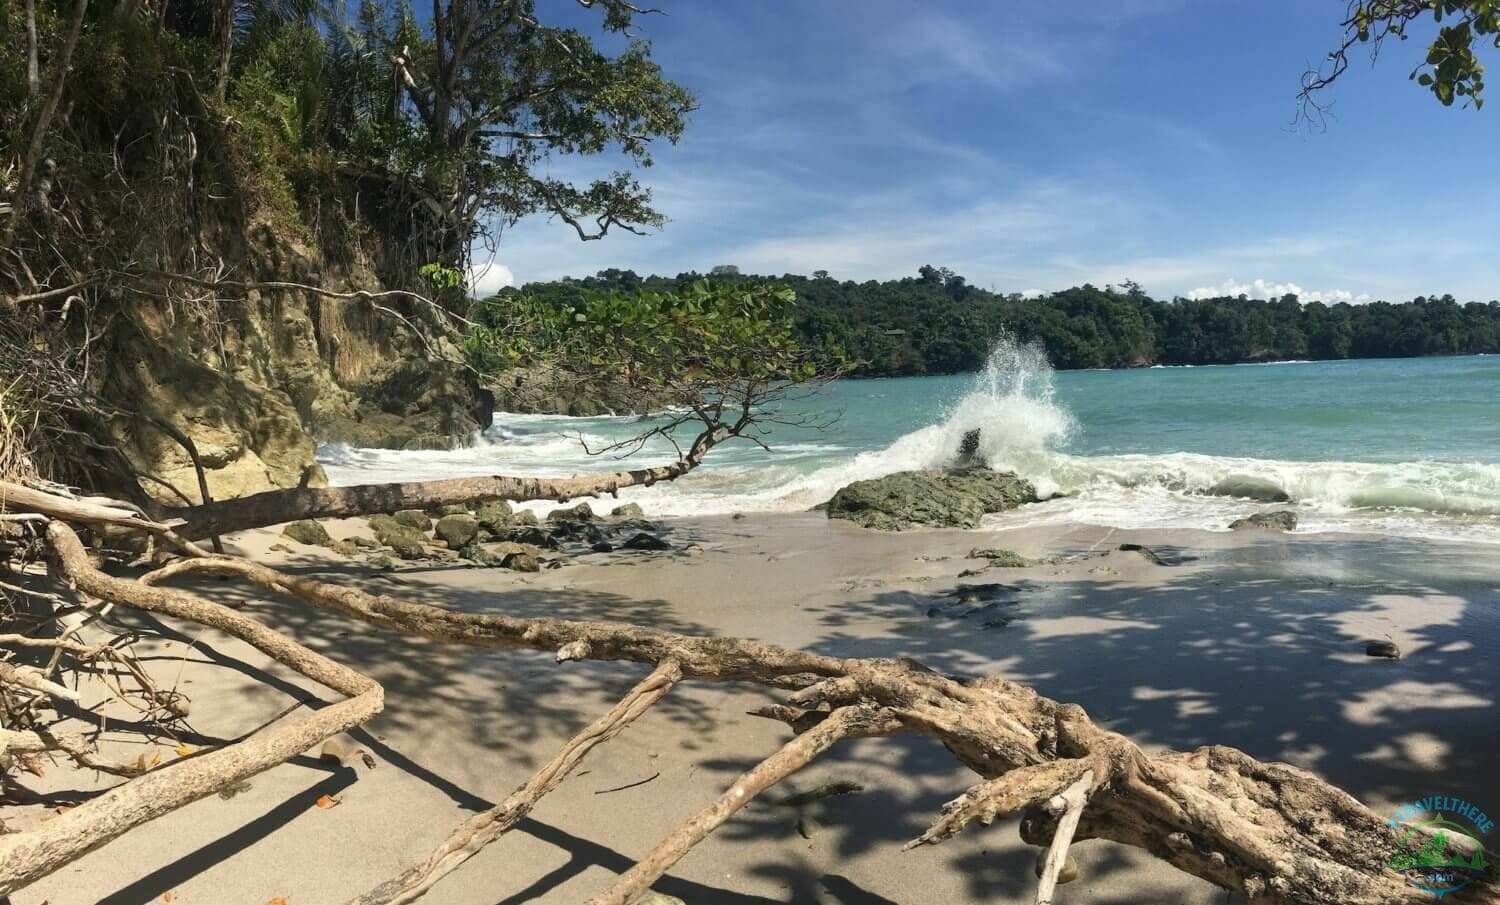 picturesque beaches, Manuel Antonio secluded cove